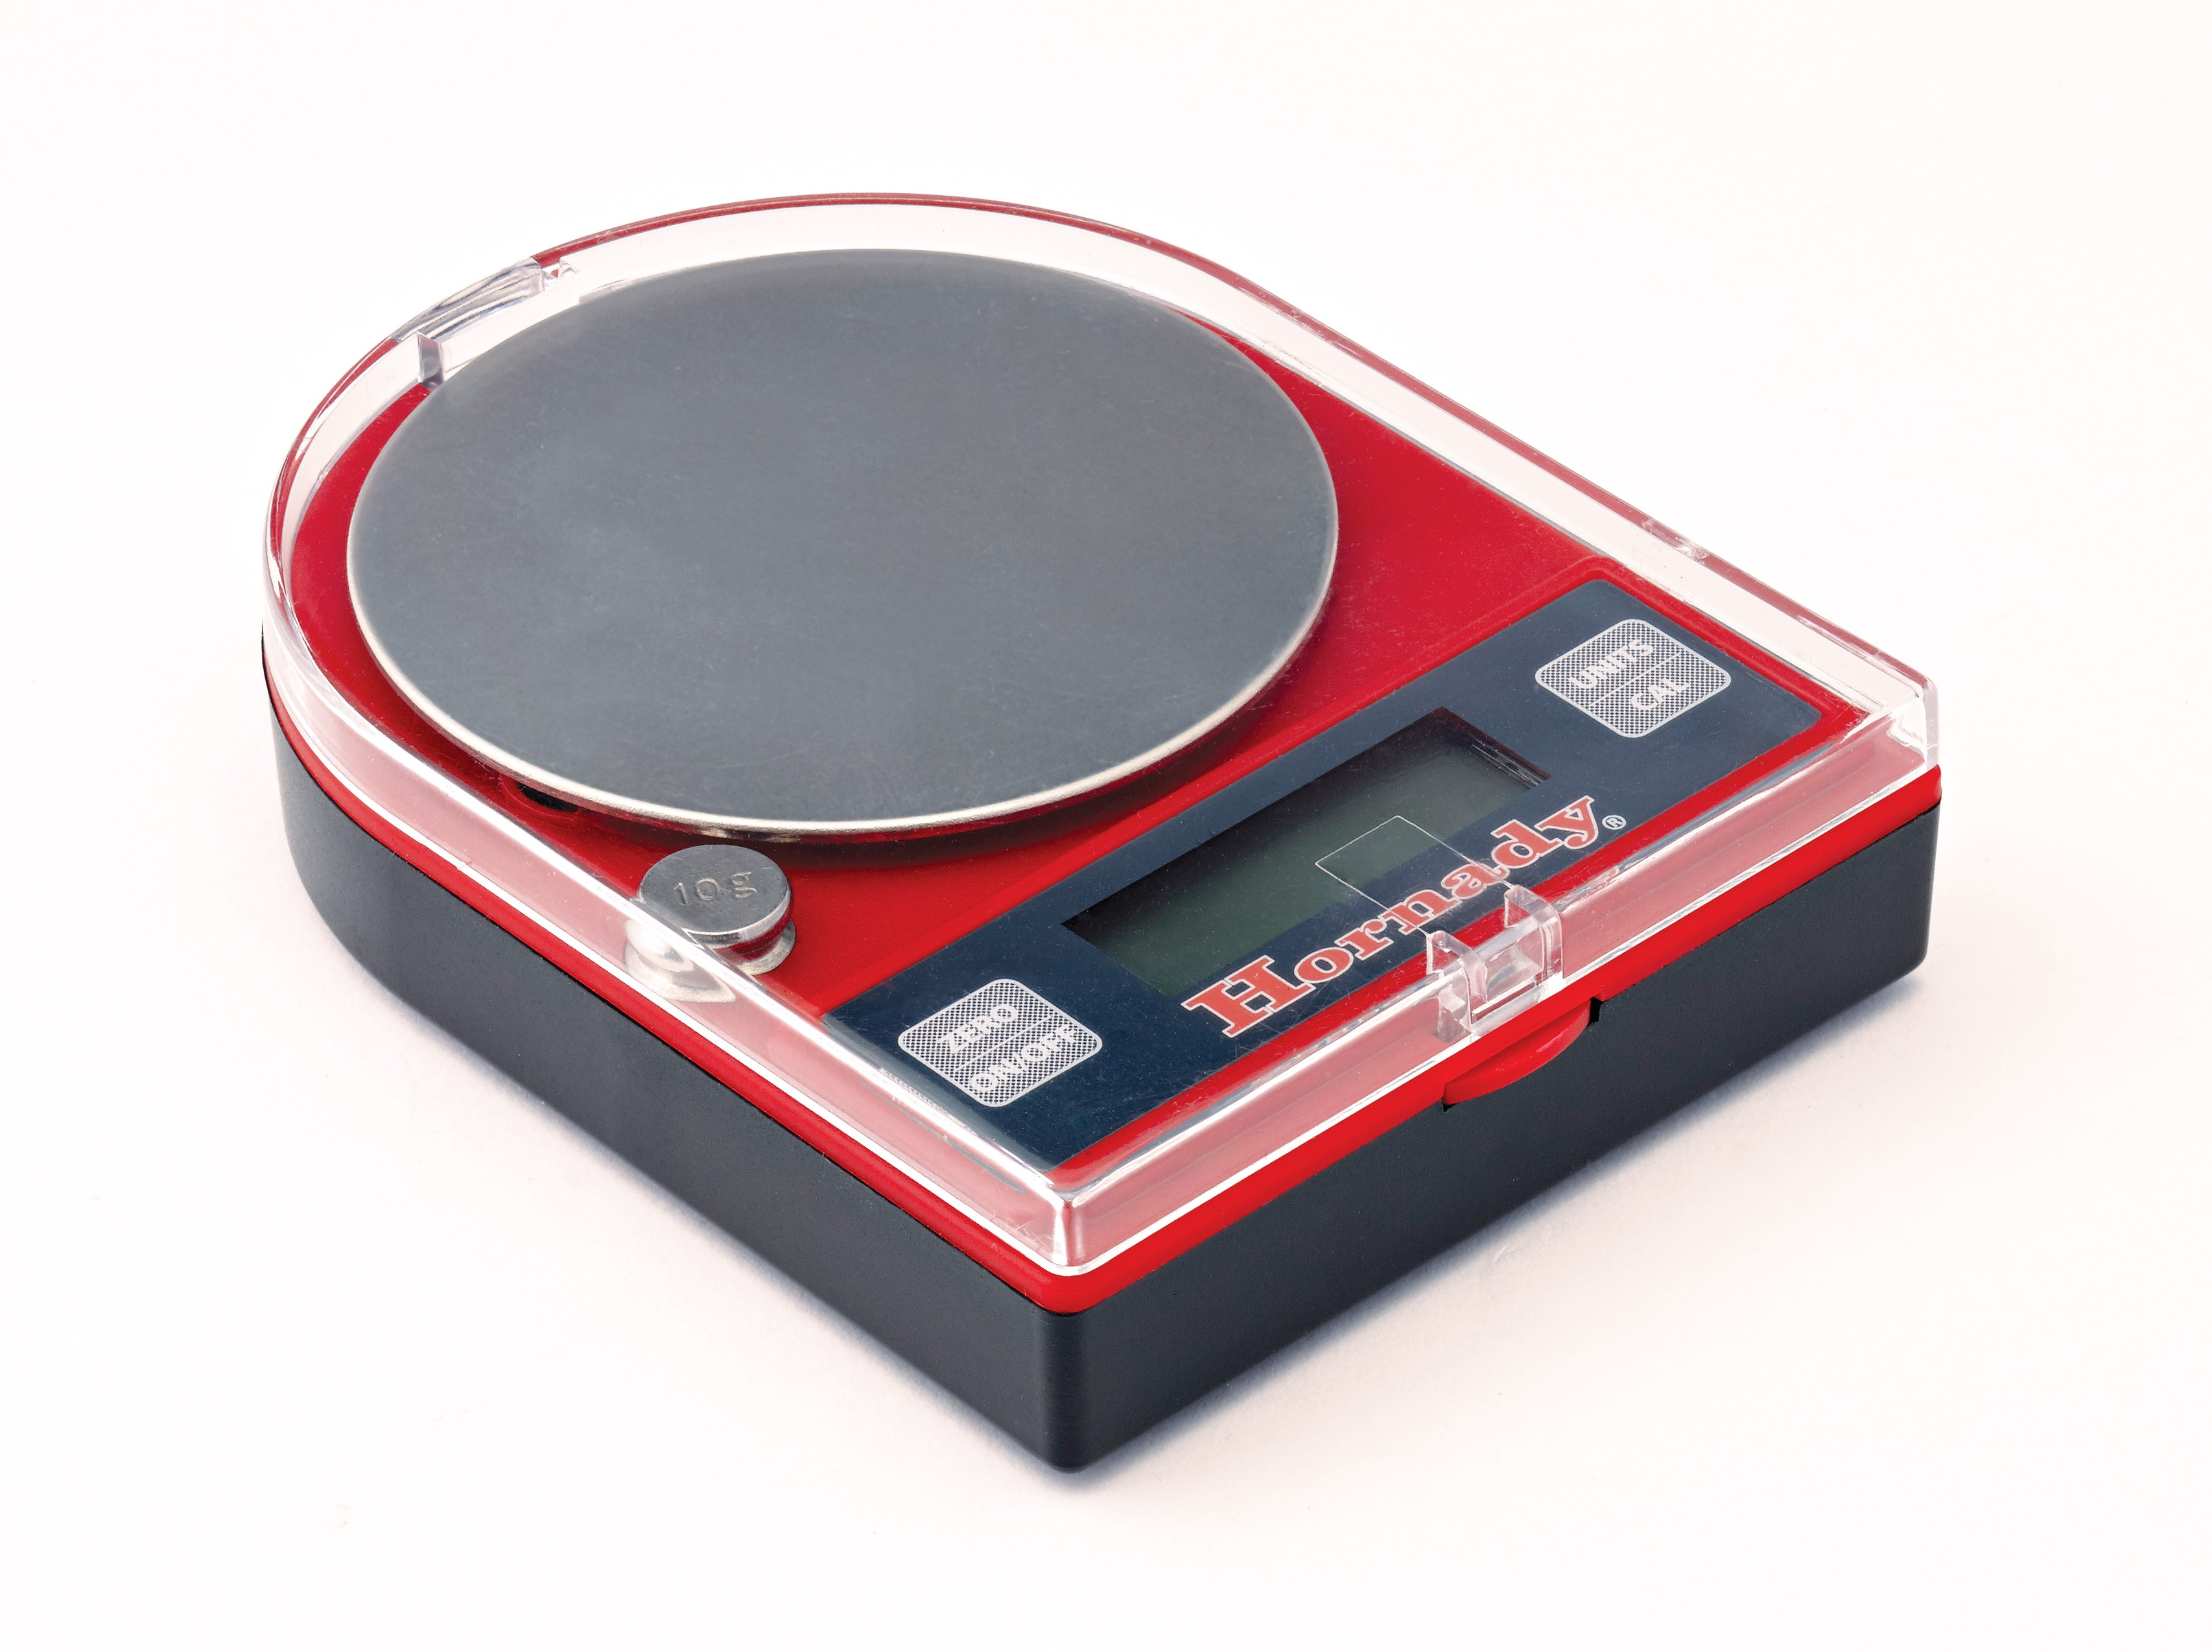 Hornady 050106 G2-1500 Electronic Scale